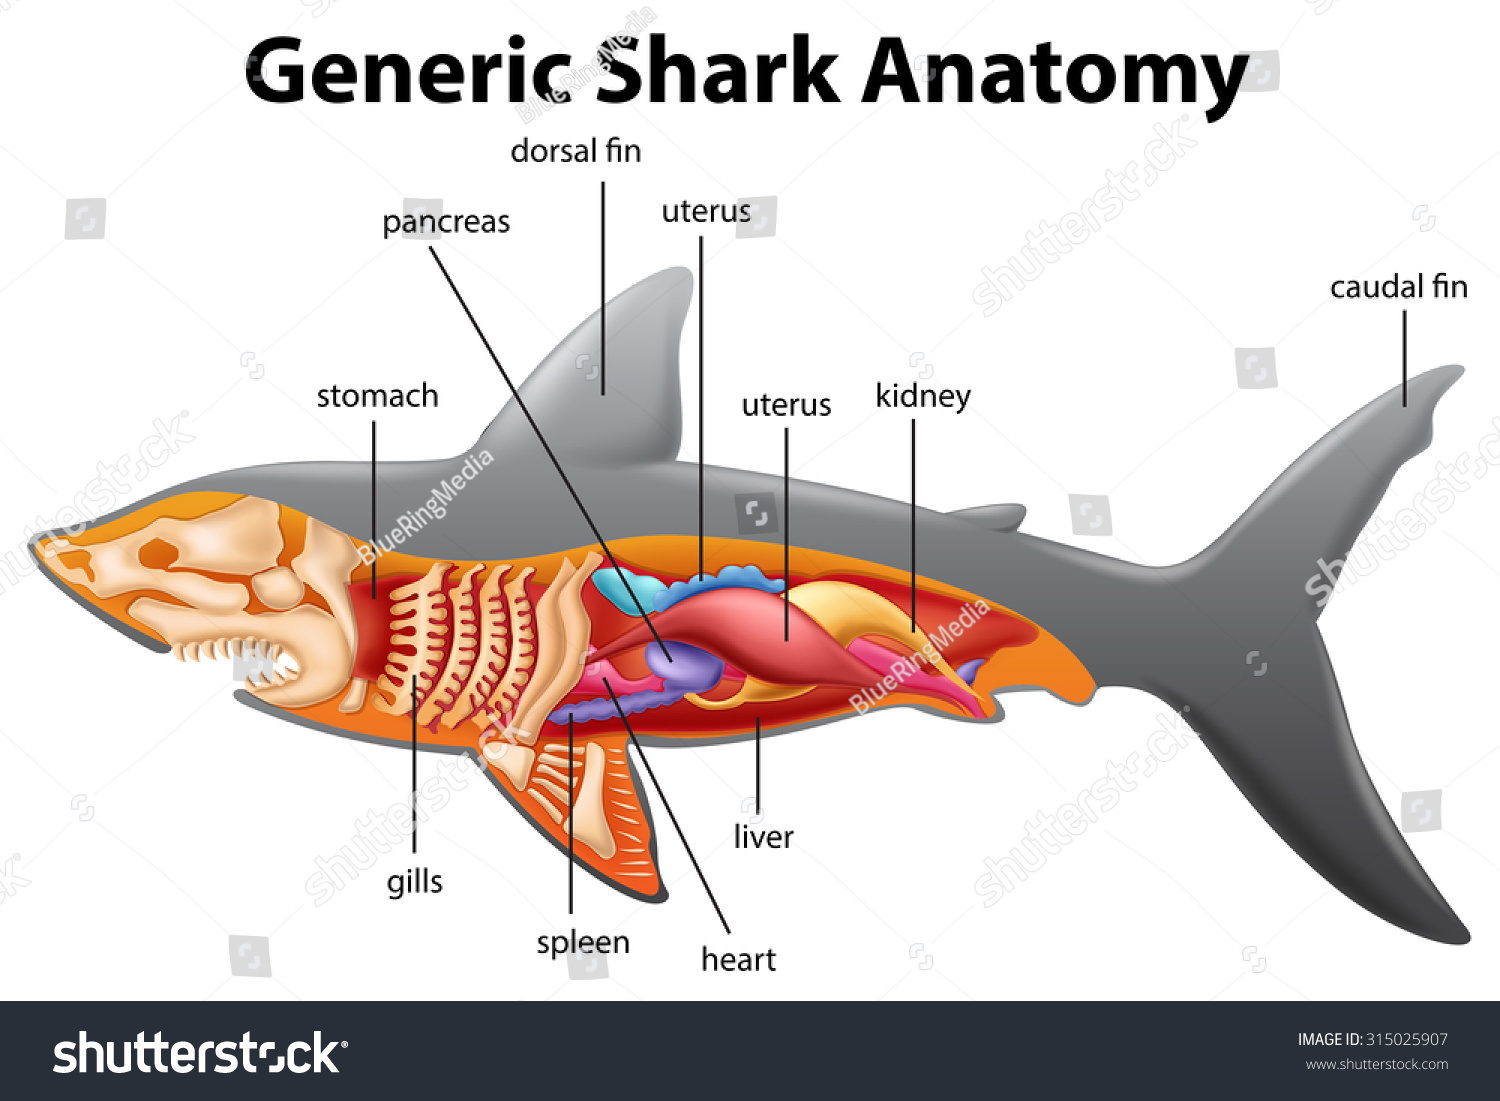 great white shark anatomy diagram golf cart wiring club car generic chart illustration stock vector